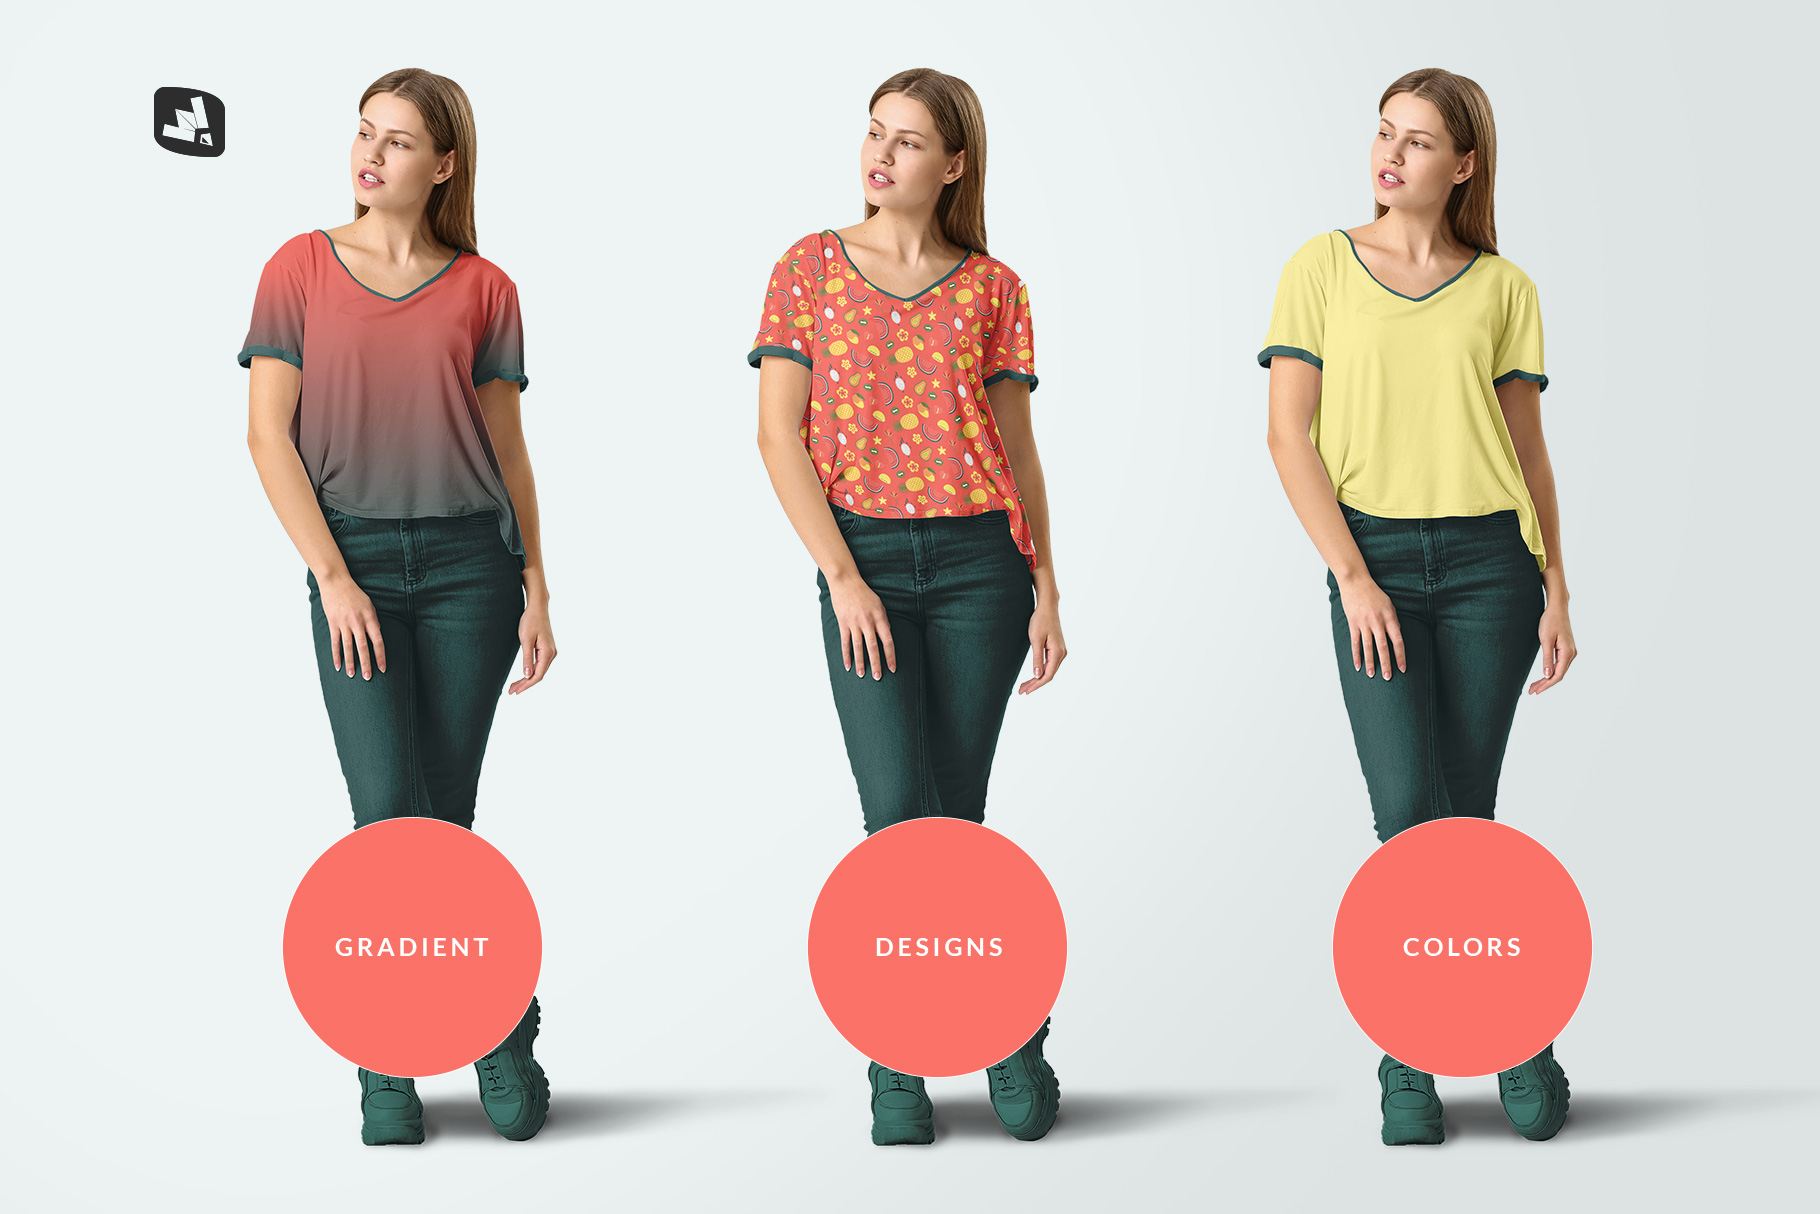 types of the casual outfit with female model mockup